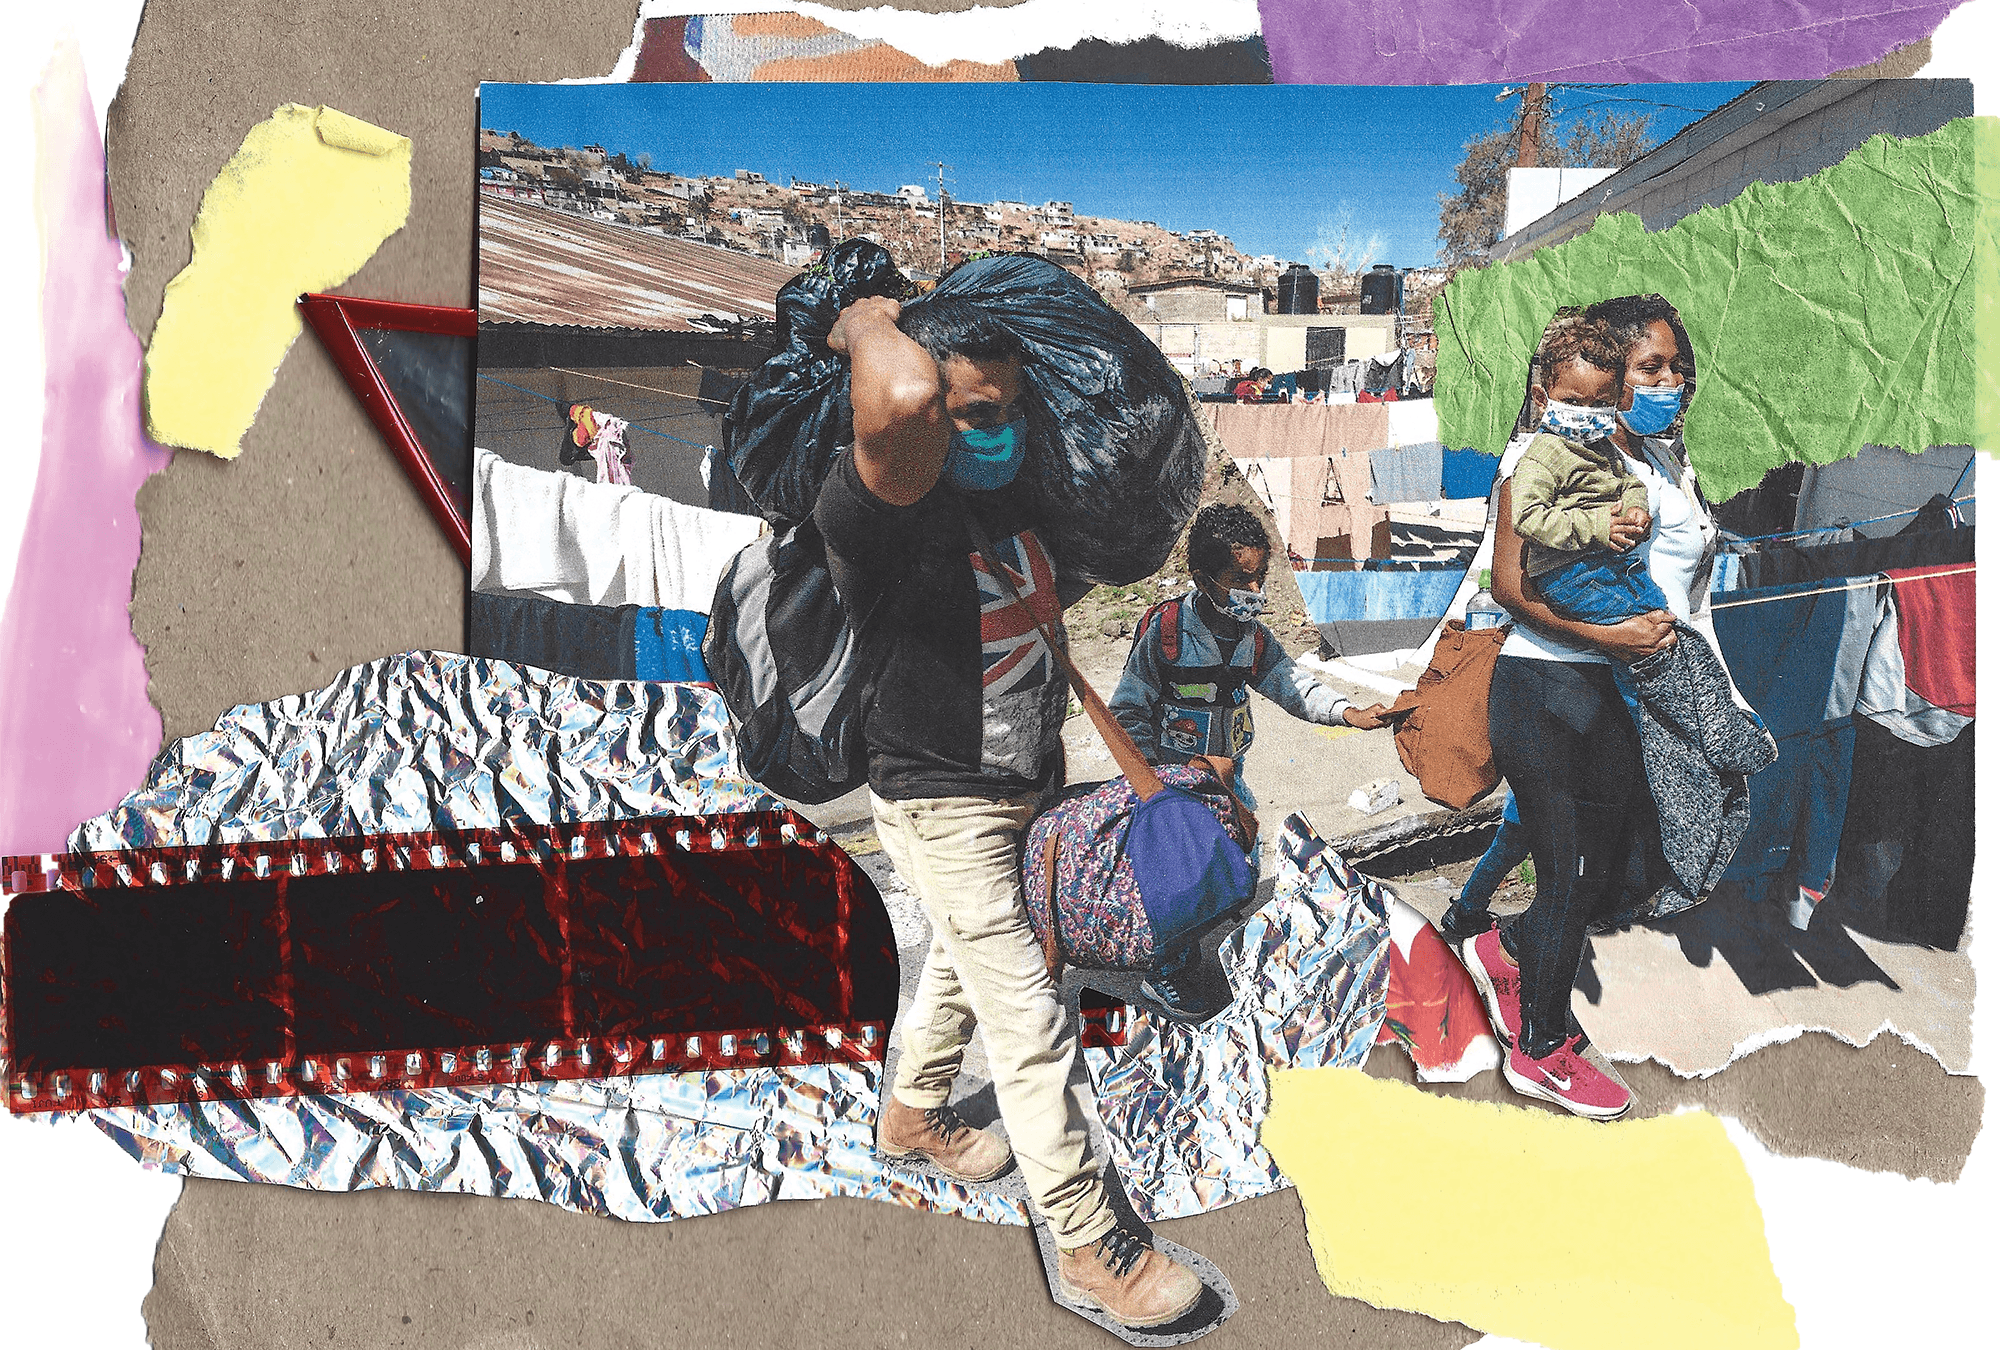 A family migrates from Honduras carrying bags.